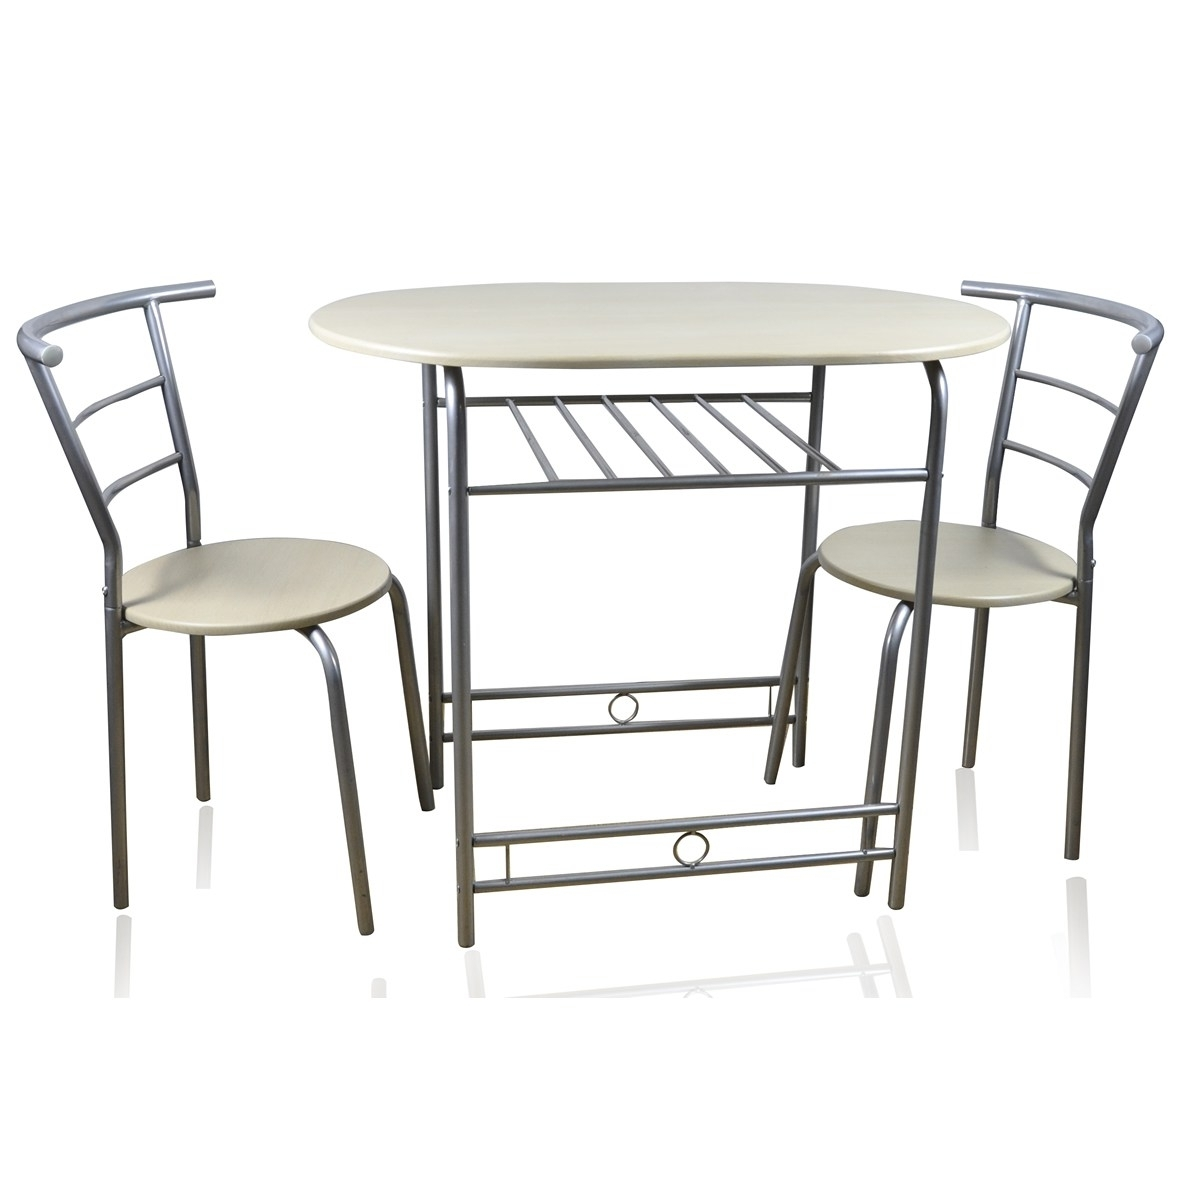 Two Seat Dining Tables With Popular 2 Seat Dining Table Sets – Castrophotos (View 9 of 25)